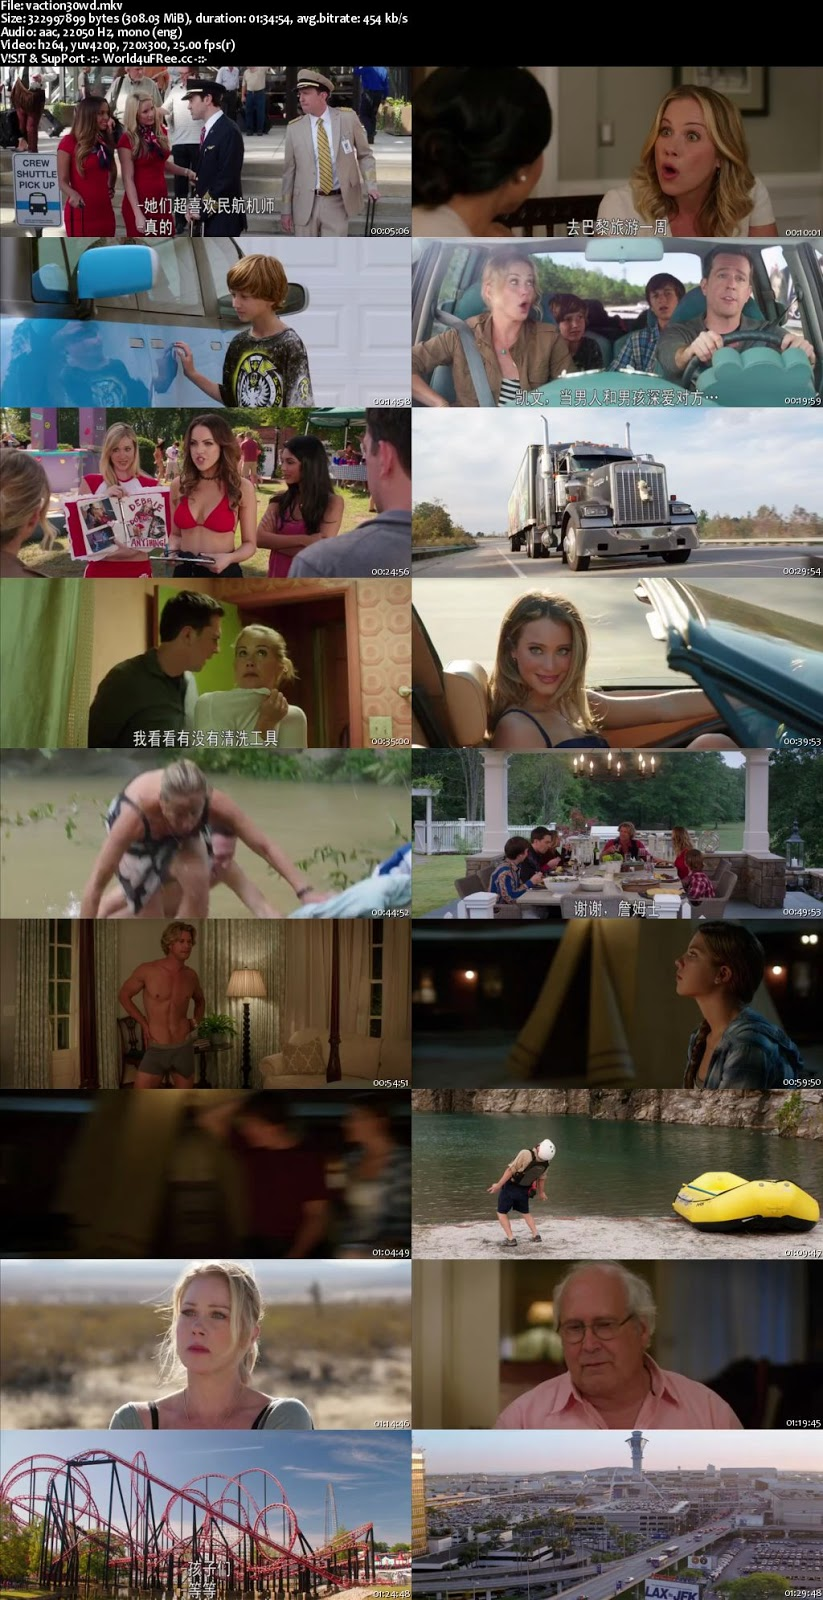 Vacation 2015 Full Movie Online Free Gallery